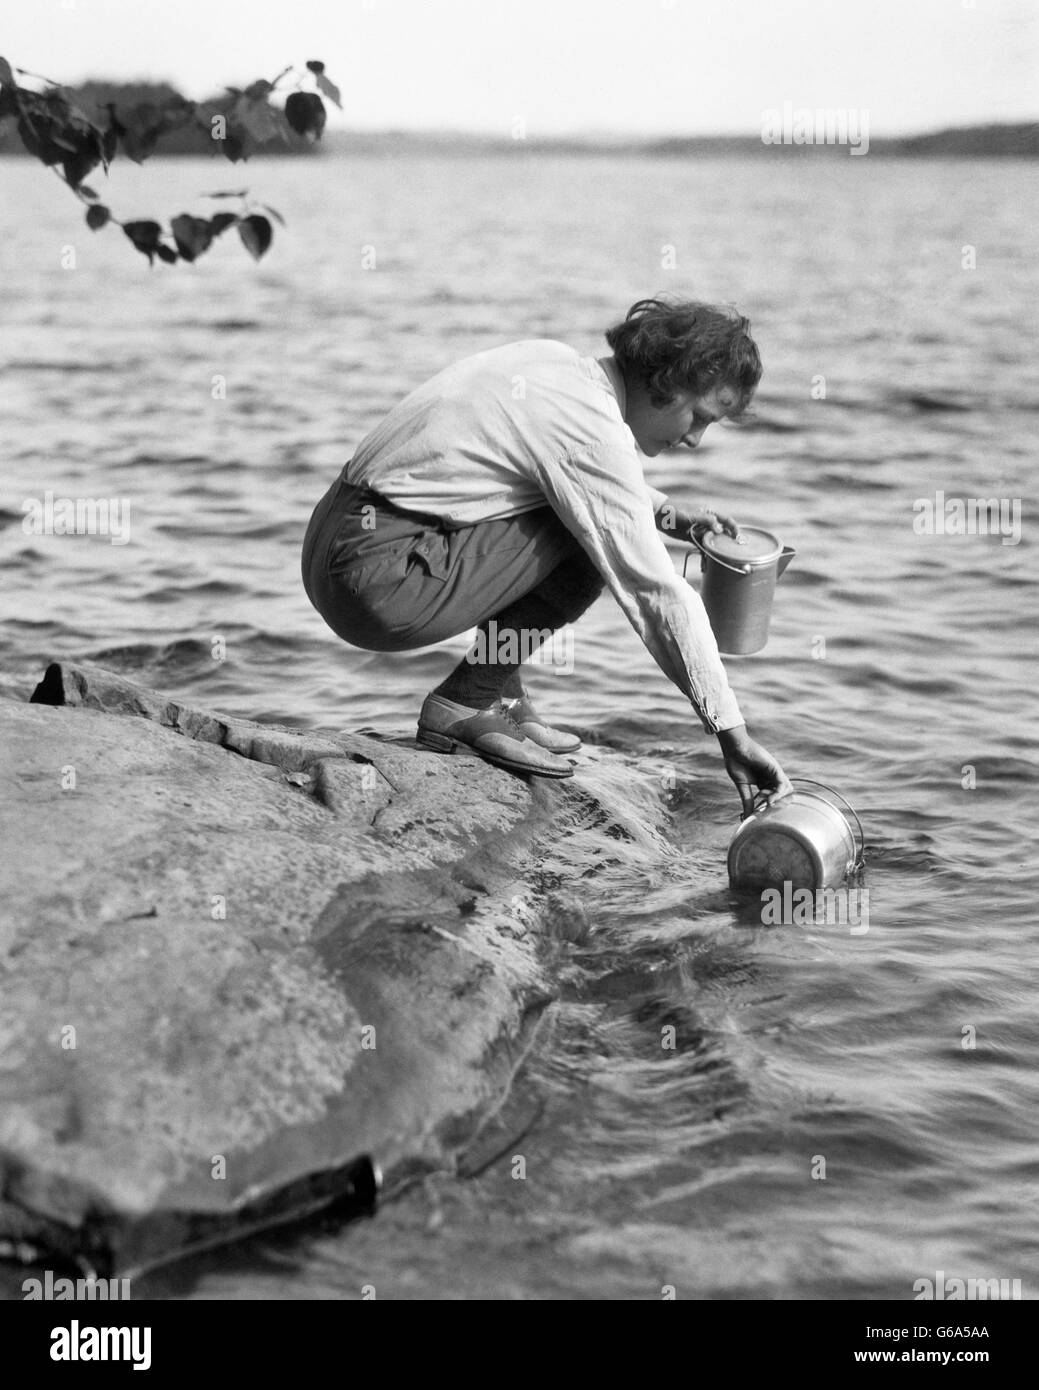 1920s 1930s WOMAN CAMPING CROUCHING ON ROCK FILLING METAL BUCKET WITH WATER FROM LAKE - Stock Image